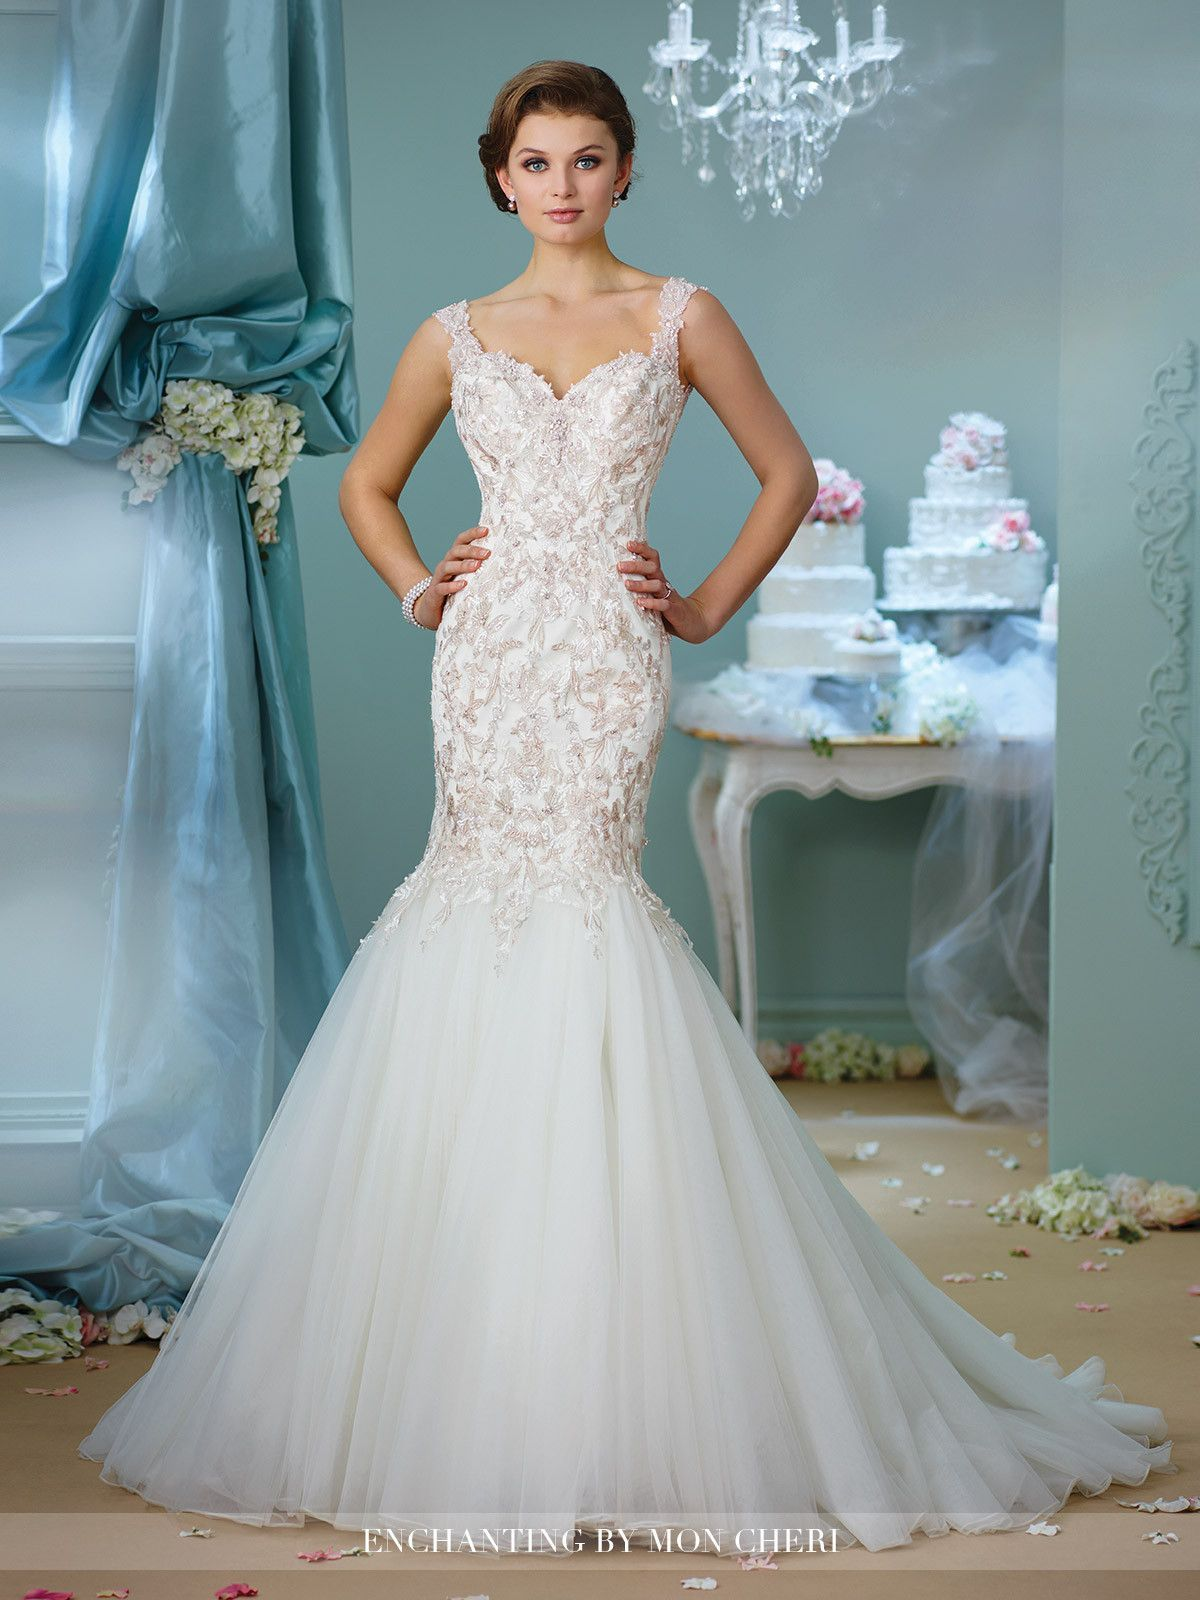 Enchanting all dressed up bridal gown gelinlikler